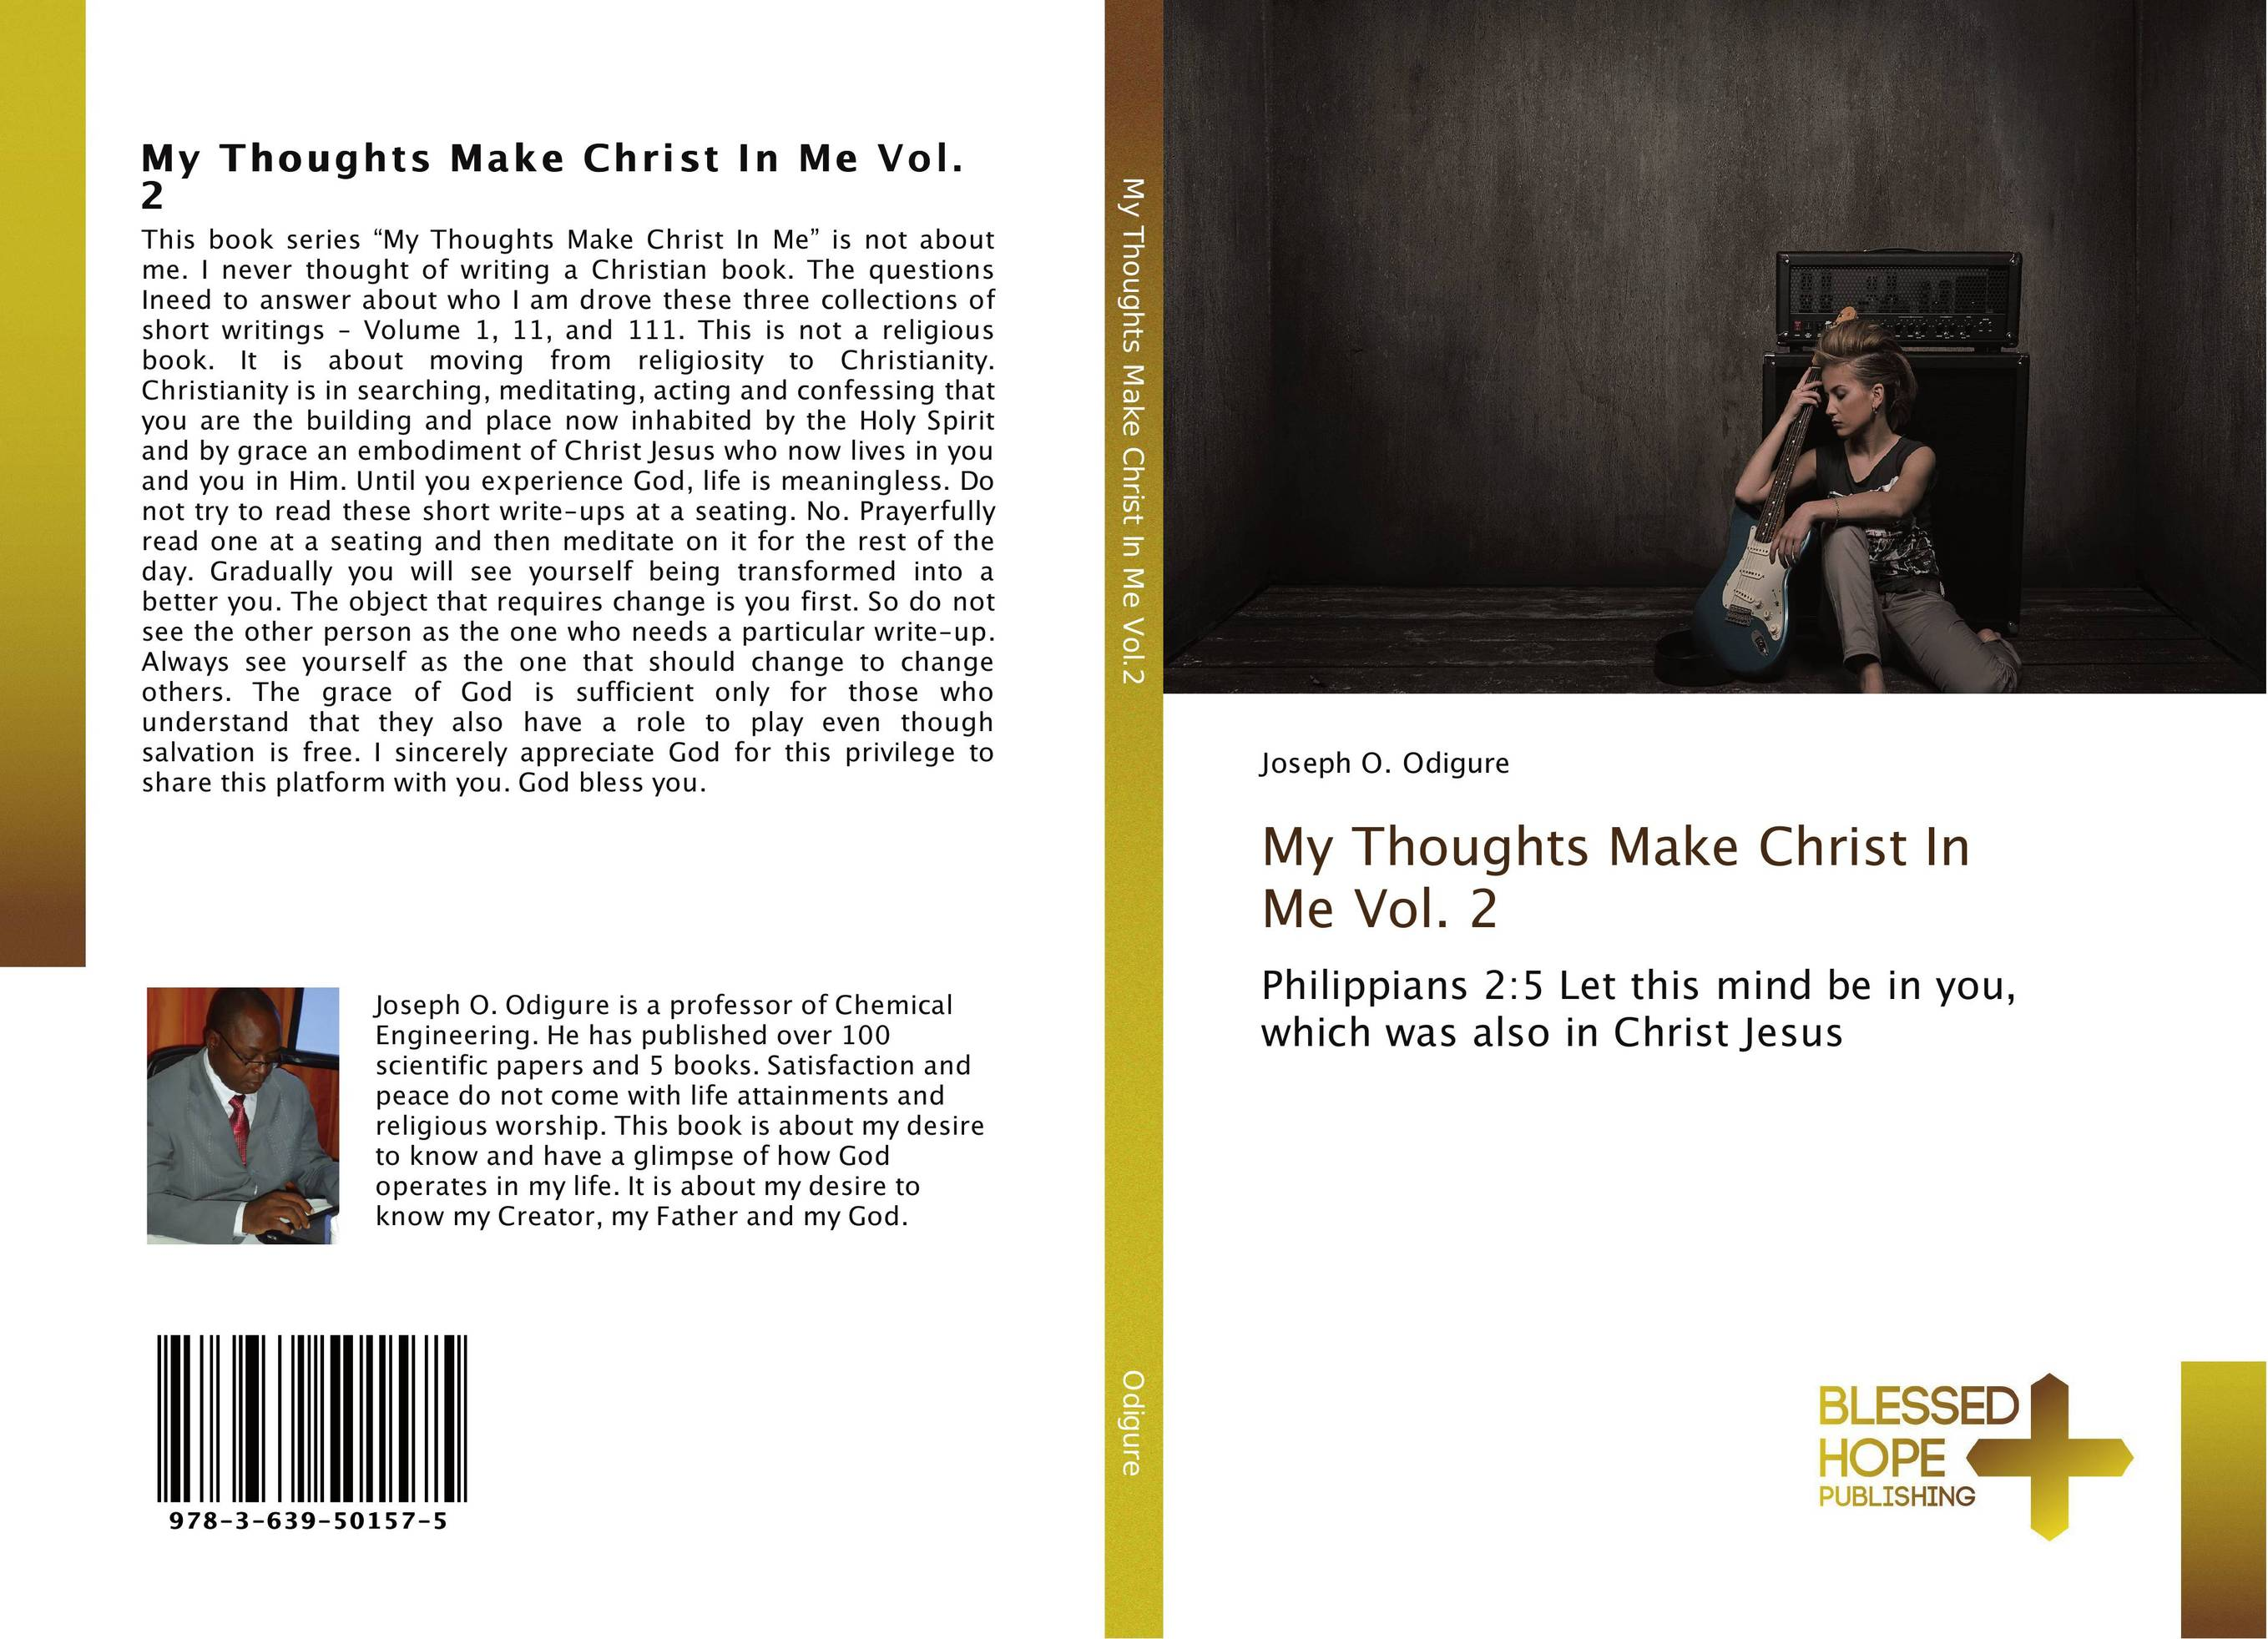 My Thoughts Make Christ In Me Vol. 2